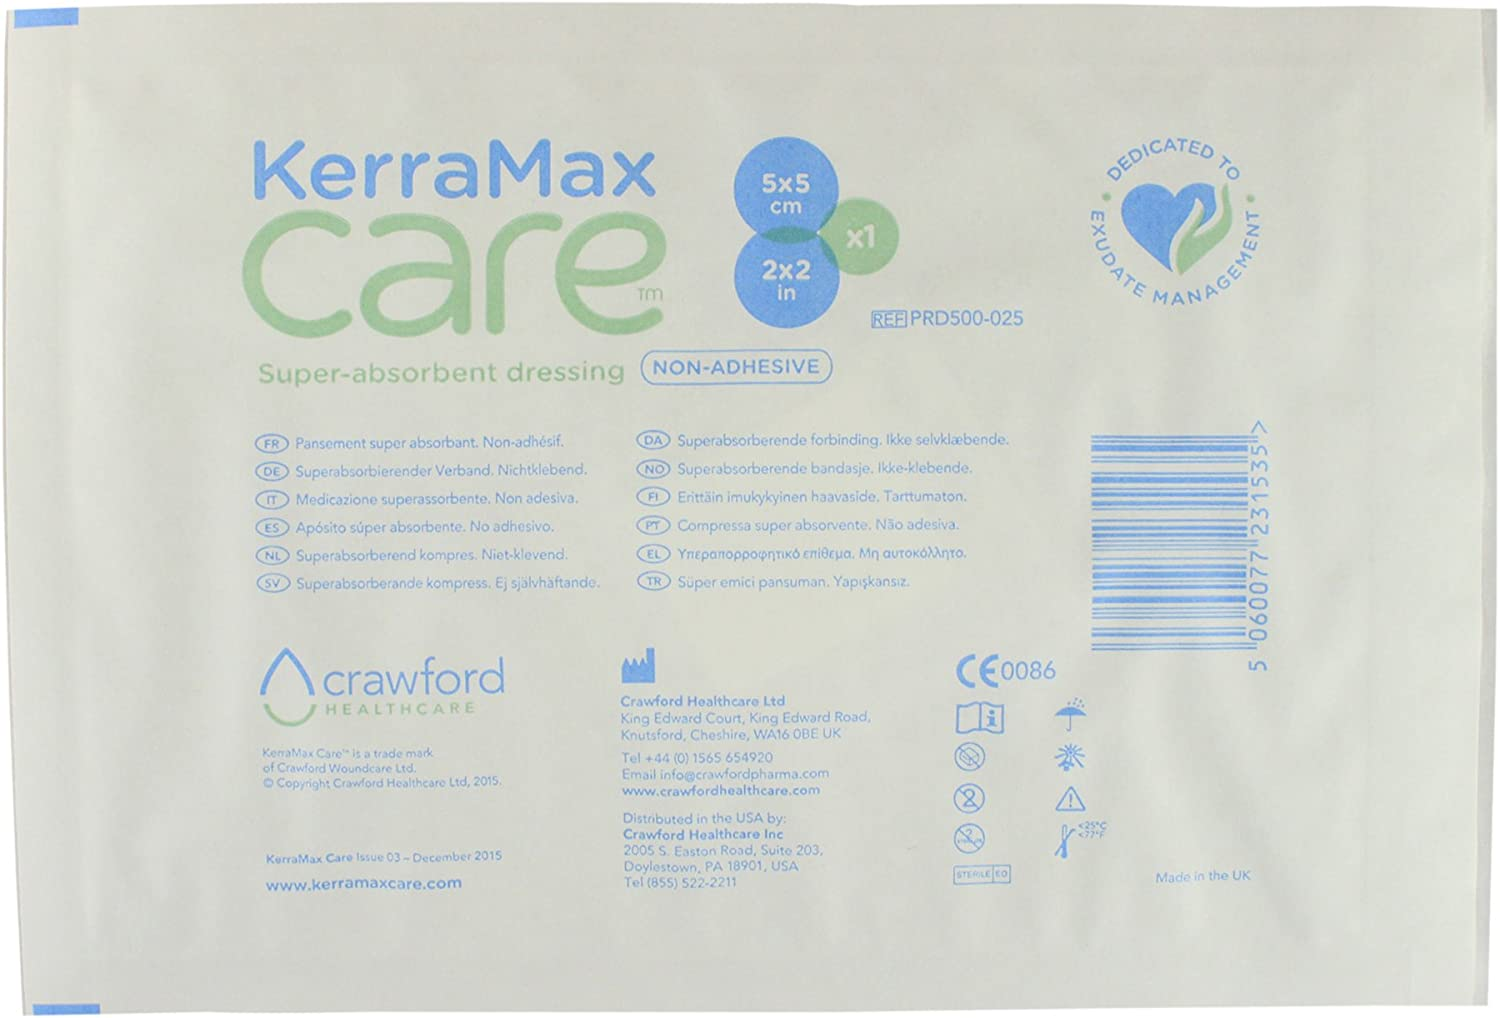 PRD500-100 Preventing Leaks or Drips for Improved Patient Comfort and Wound Care Treatment Absorbs Exudate and Isolates it Box of 10 KerraMax Care 5x6 Super Absorbent Wound Dressing